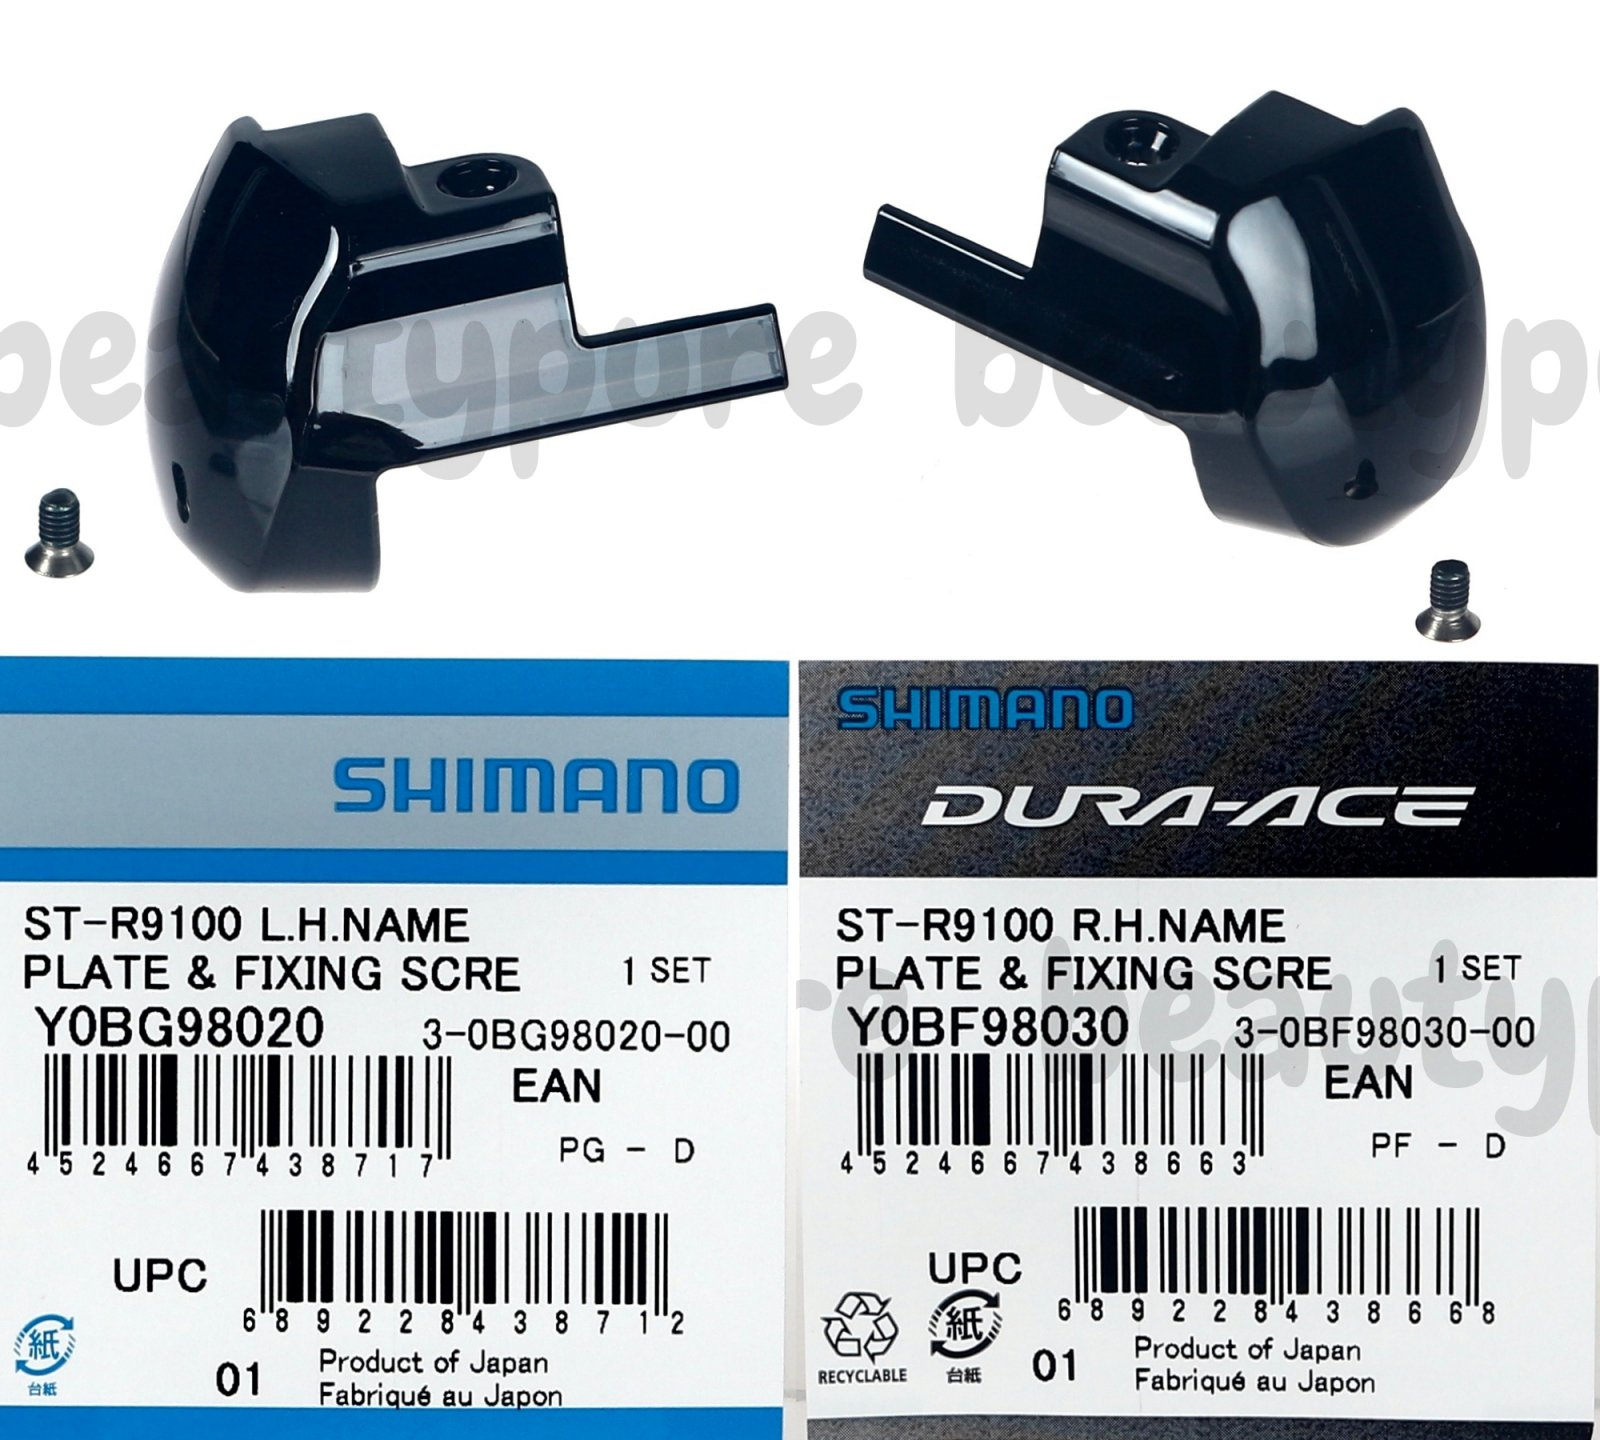 Shimano Dura-Ace R9100 Right STI Lever Name Plate and Fixing Screws